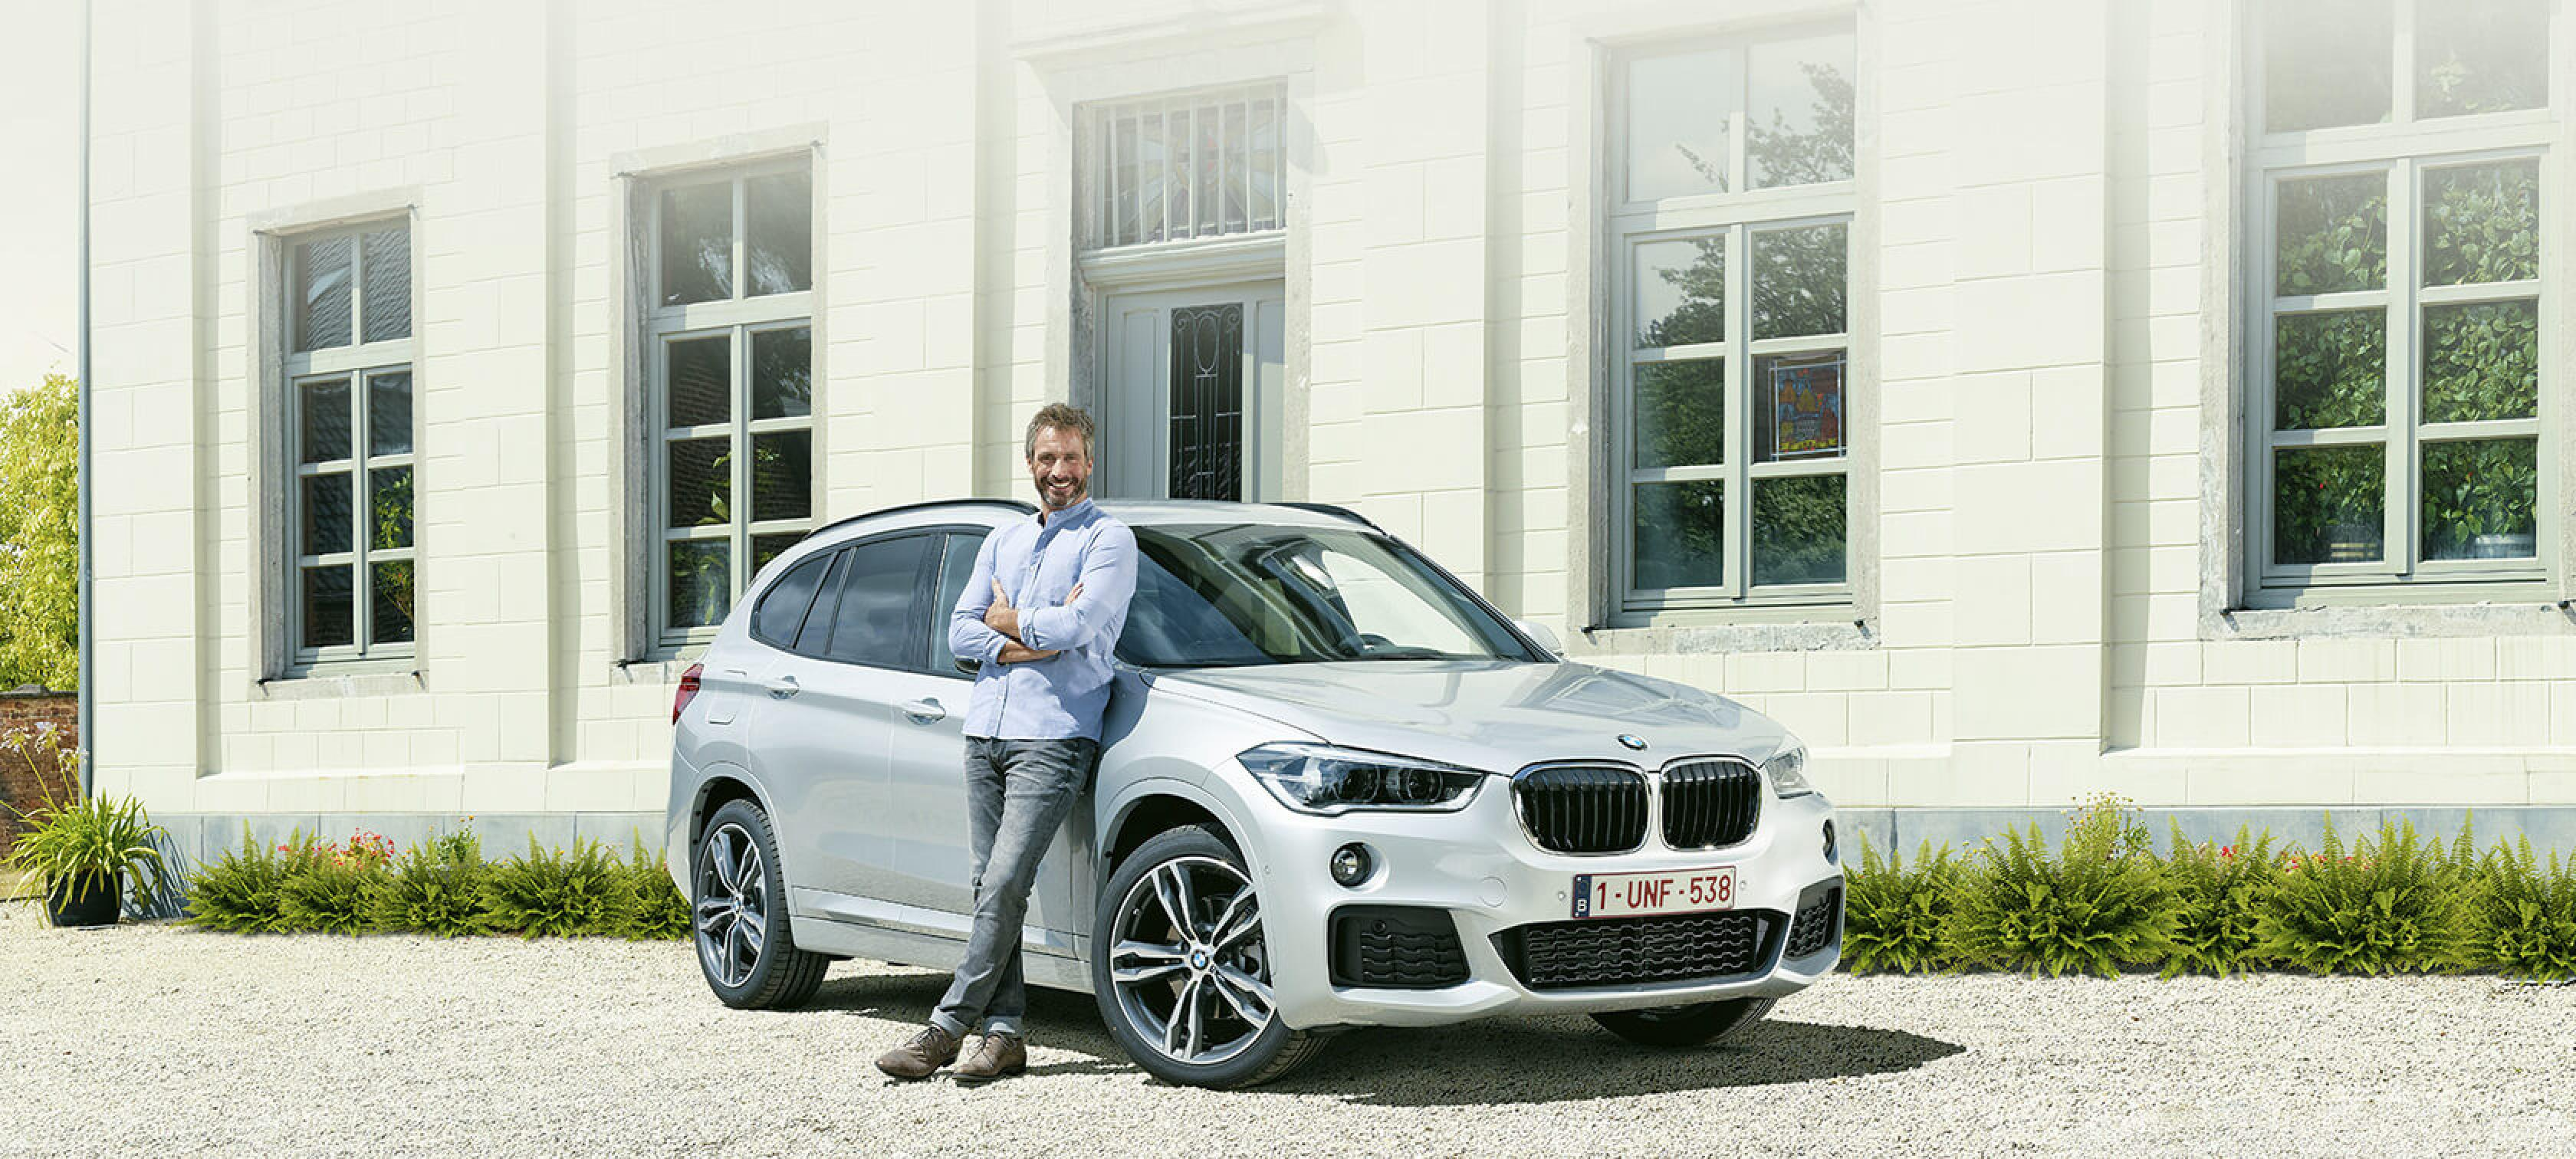 "DE BMW X1 ""NICOLAS"" EDITION."